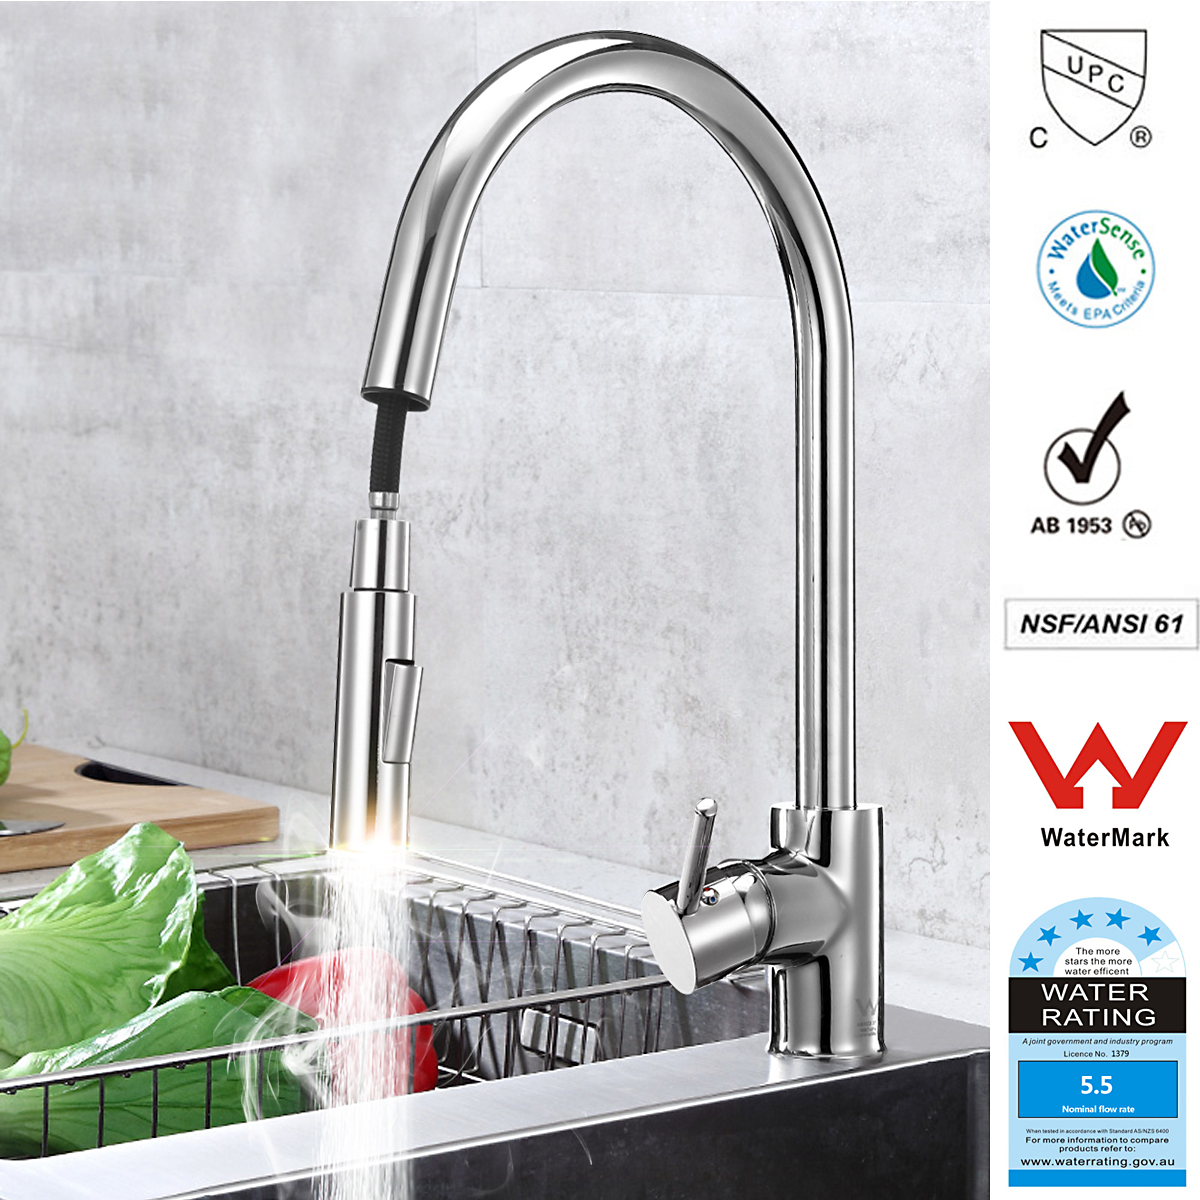 Kitchen Sink Pull-out Spray Faucet DR Brass Single Handle Cold and Hot Water Mixer Tap